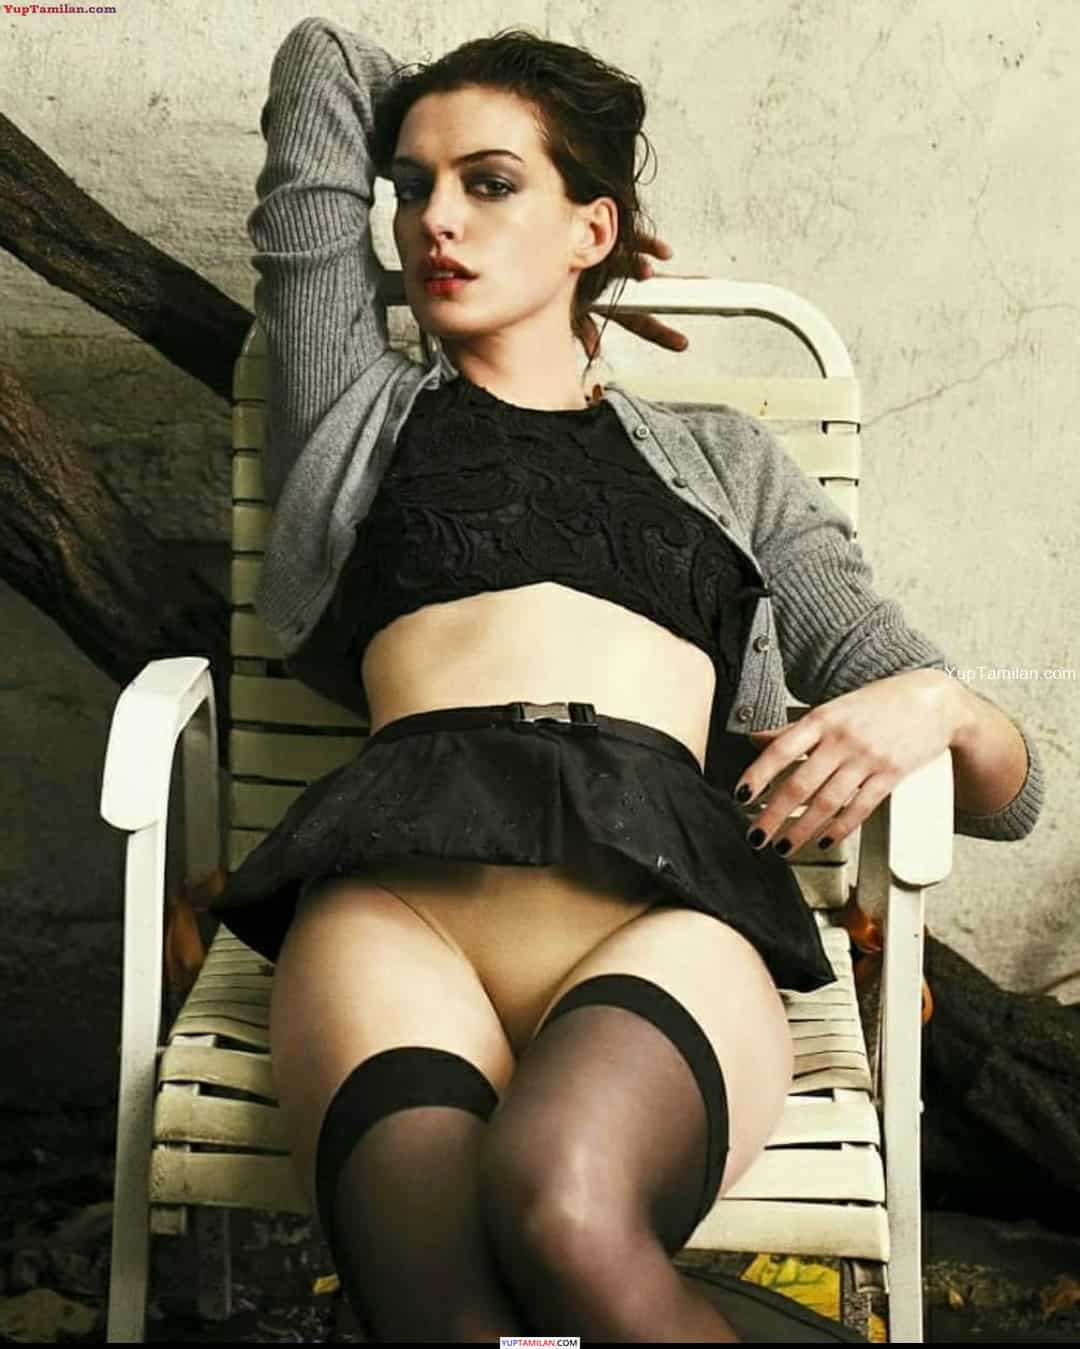 Anne Hathaway Sexy Photos in Black Bikini - Hot Lingerie Pictures